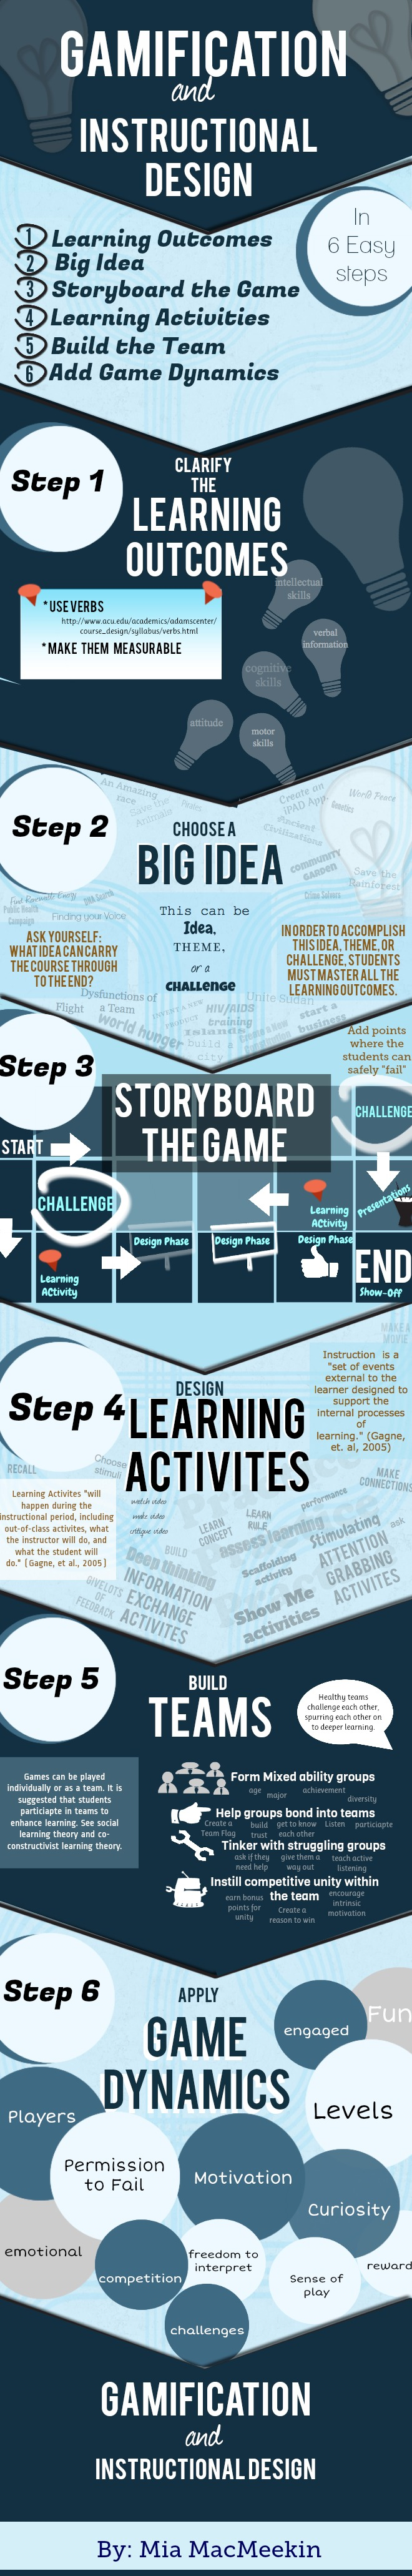 How To Gamify Your Classroom In 6 Easy Steps - #gamification